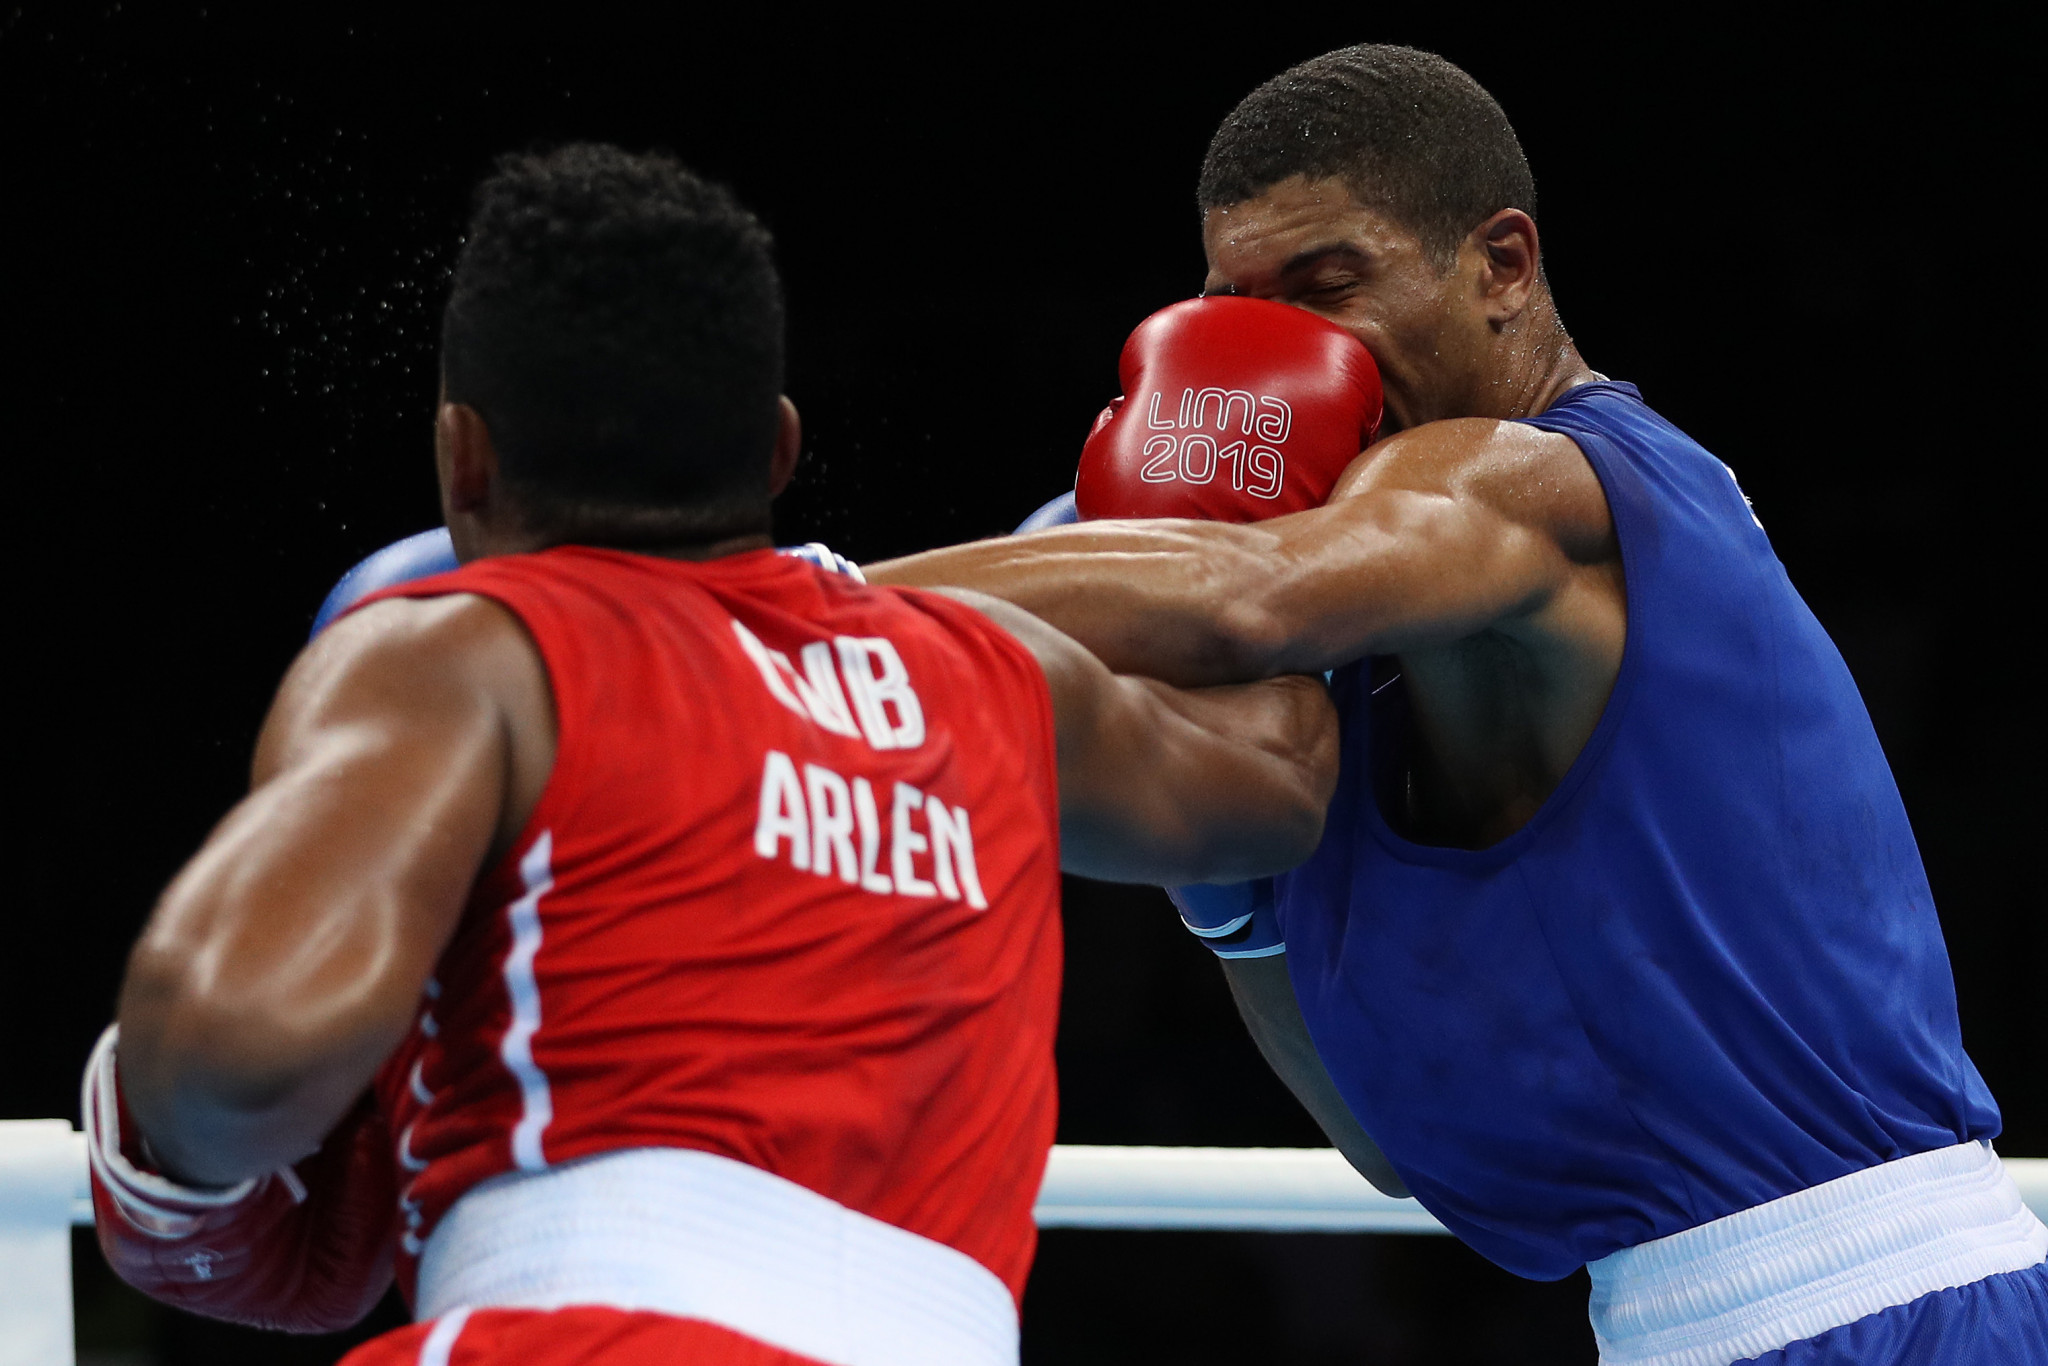 Cuba's Olympic champion Arlen Lopez defended his Pan American Games title ©Getty Images